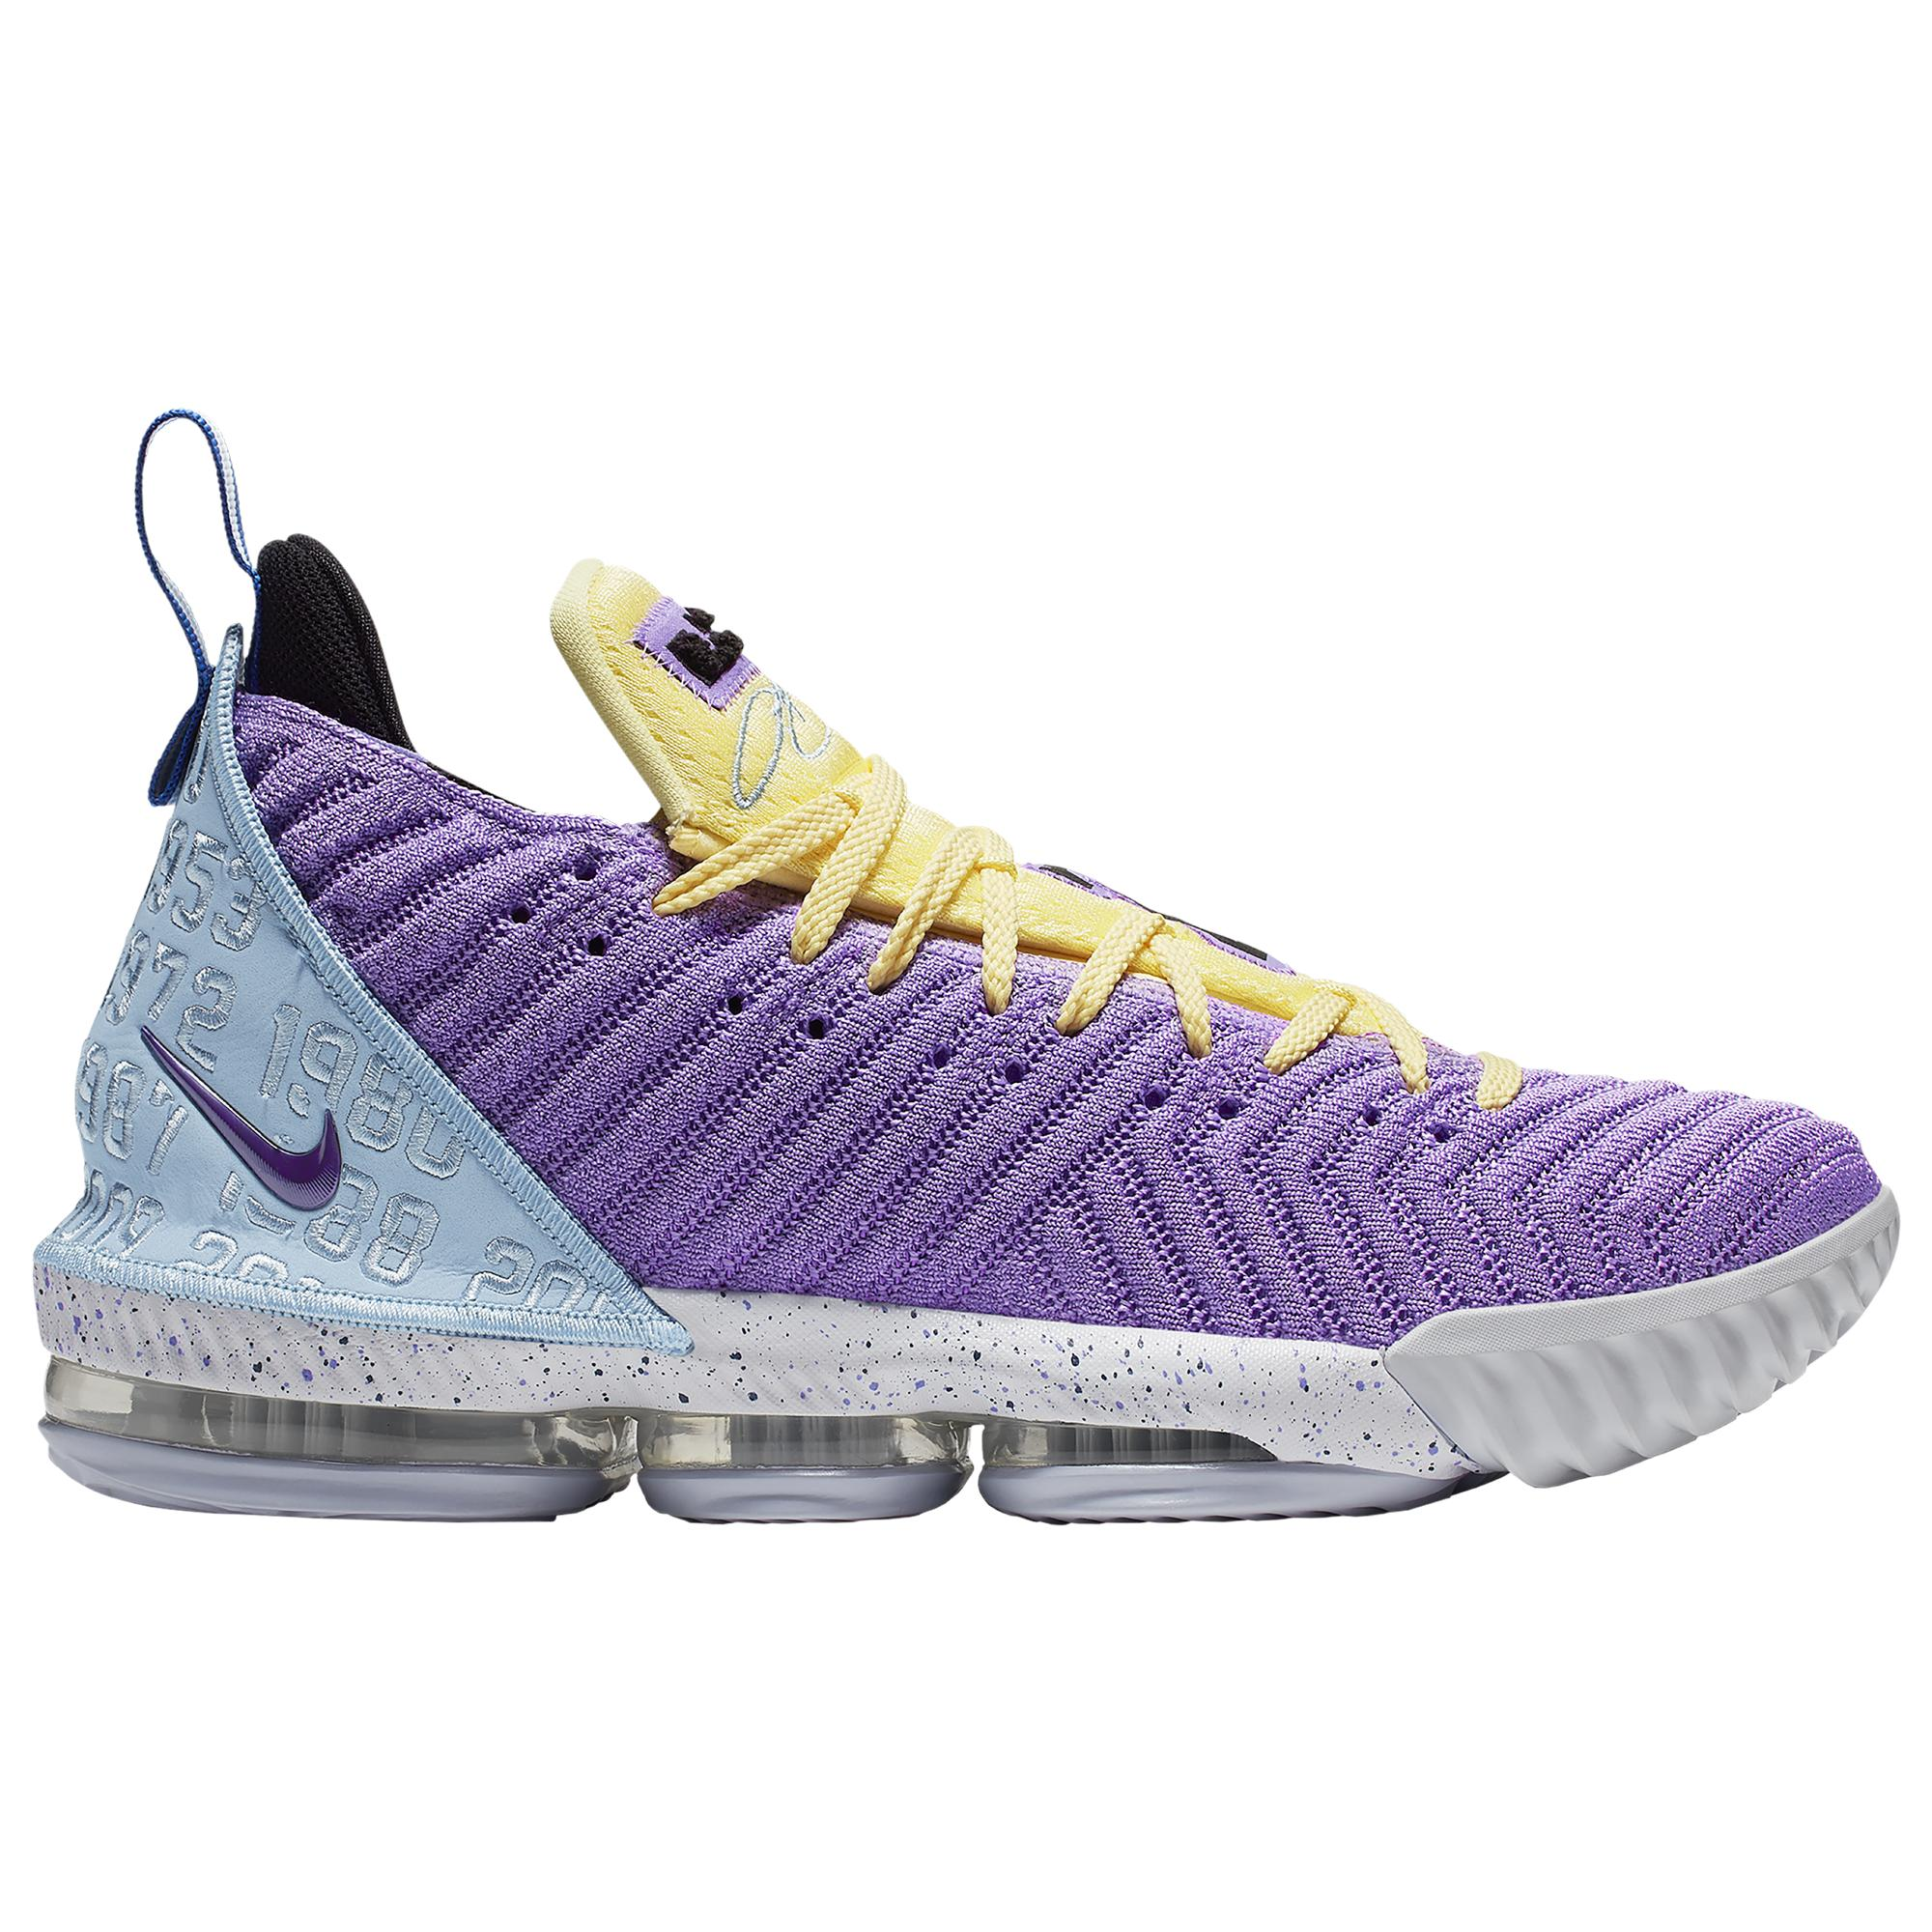 Nike Lebron 16 Lakers Championships in